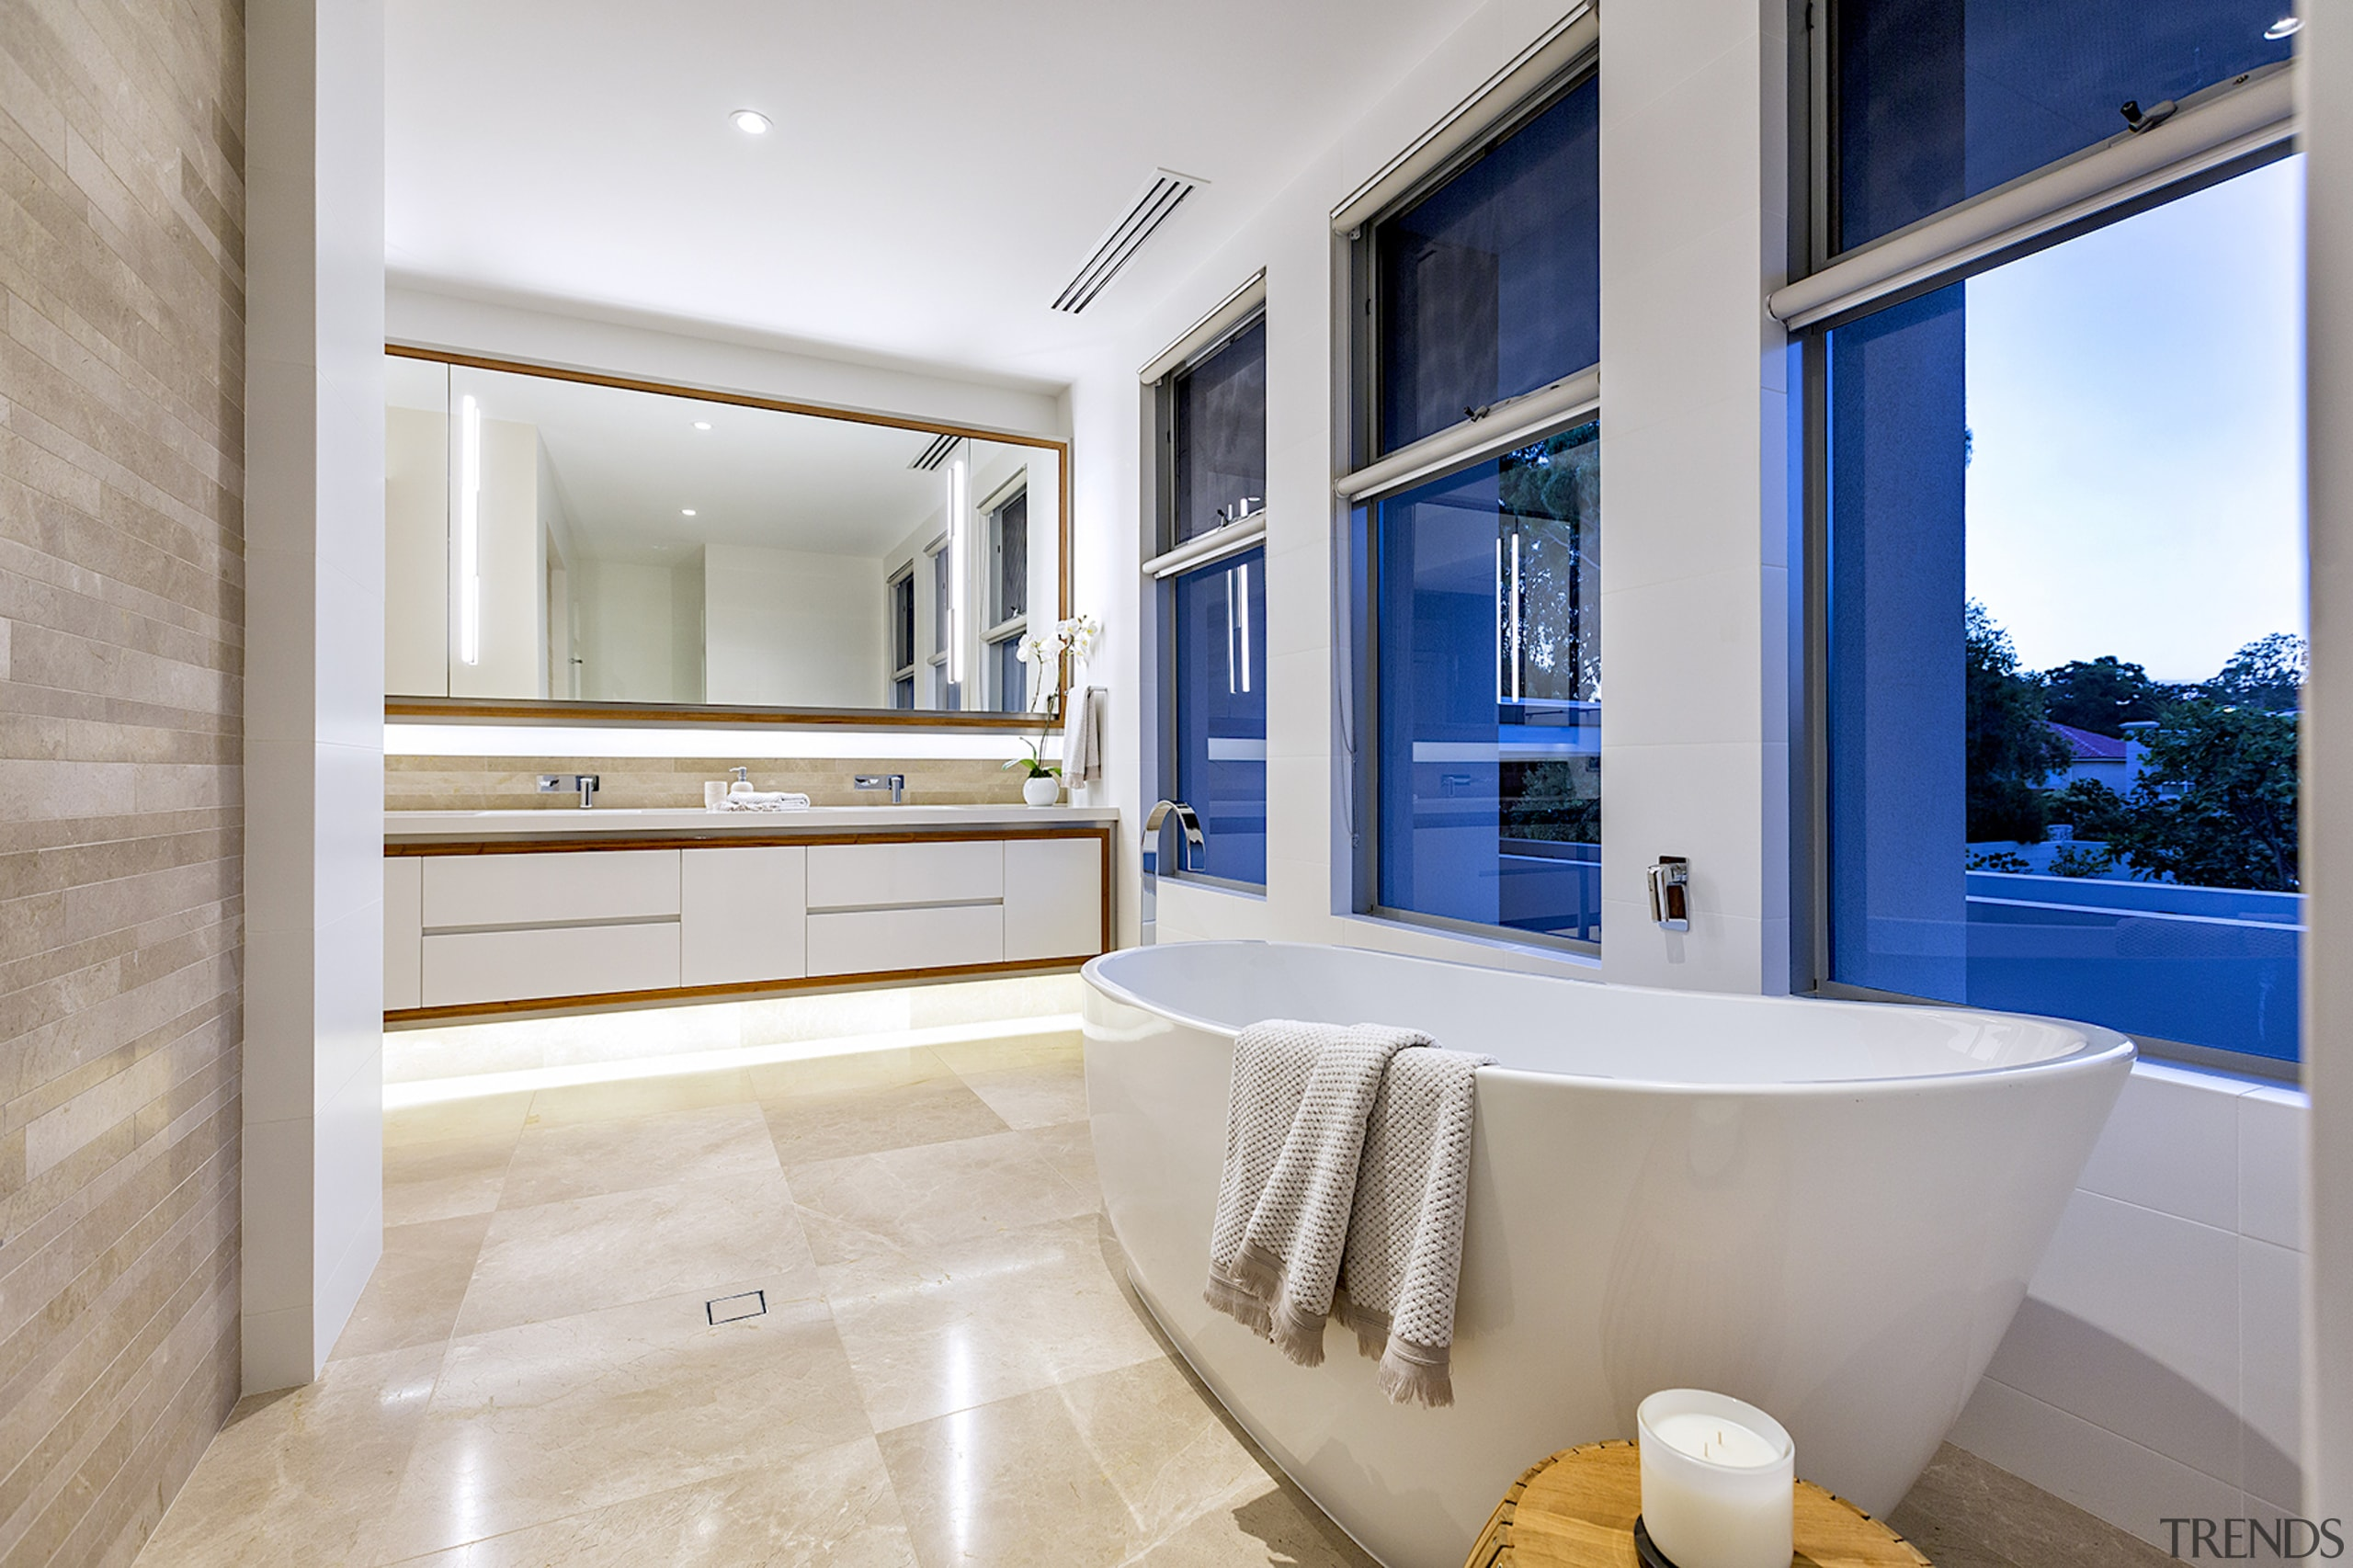 Freestanding tub is positioned by windows to let architecture, bathroom, bathtub, building, cabinetry, ceiling, estate, floor, furniture, home, house, interior design, property, real estate, room, suite, tap, gray